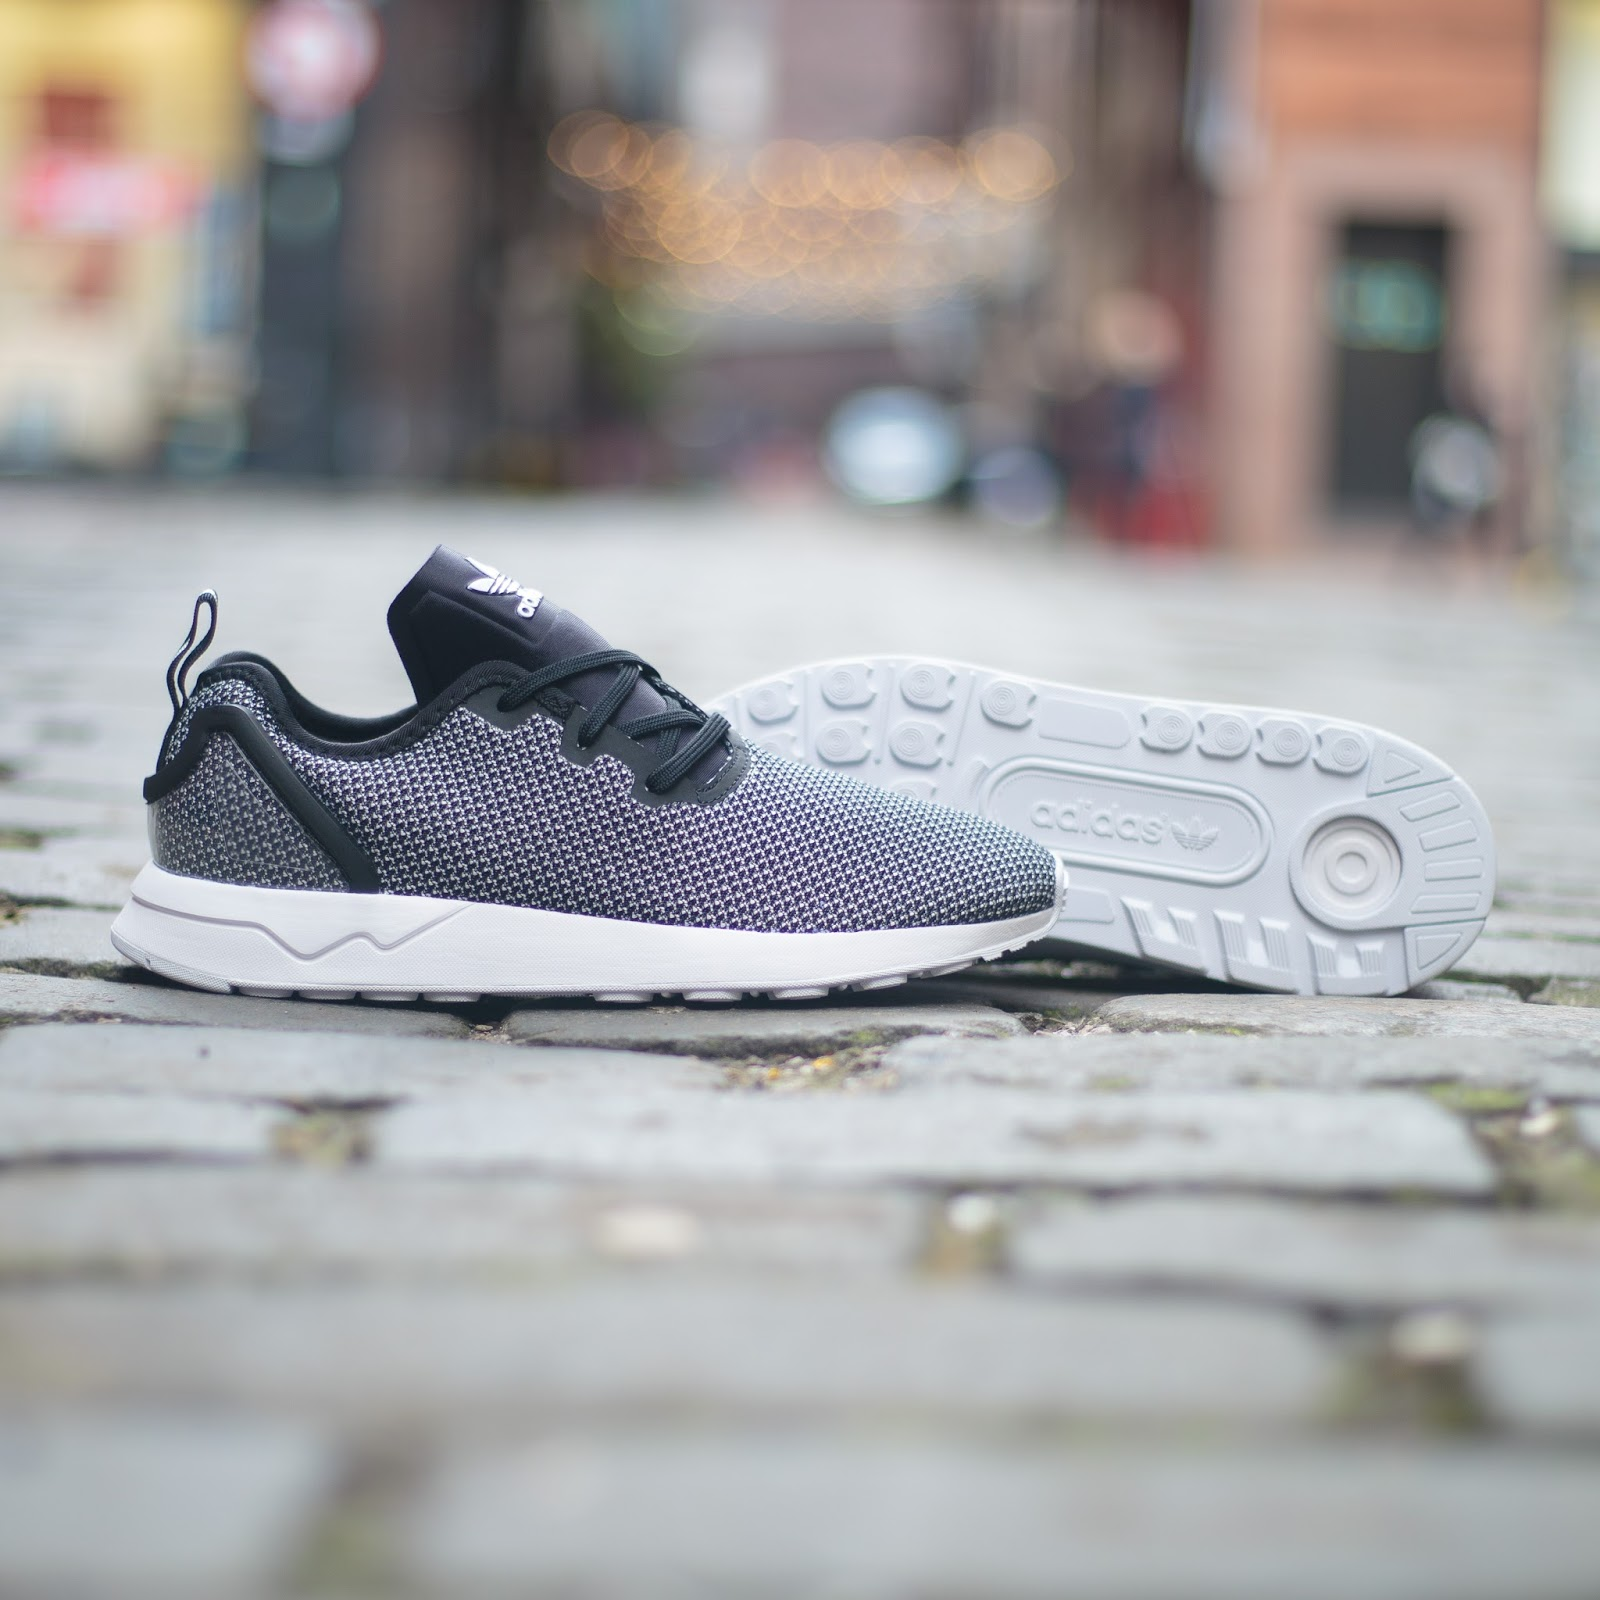 adidas ZX Flux shoes grey white Stylefile